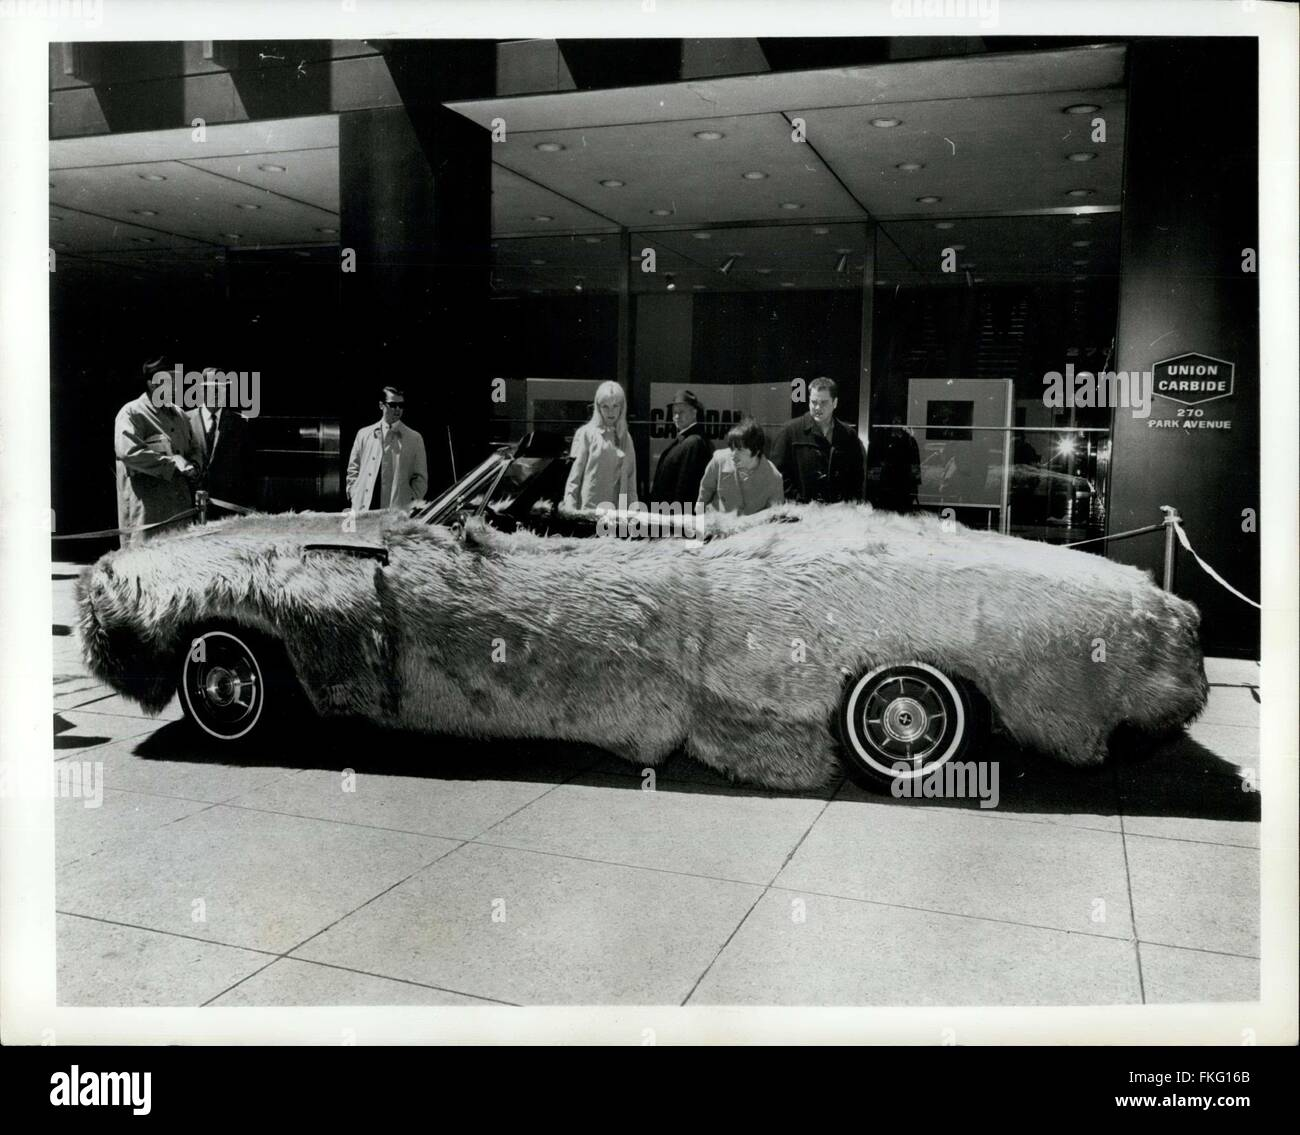 1968 - Demise Of Car-Wash Industry: May be, if Vodon Industries, Inc ...